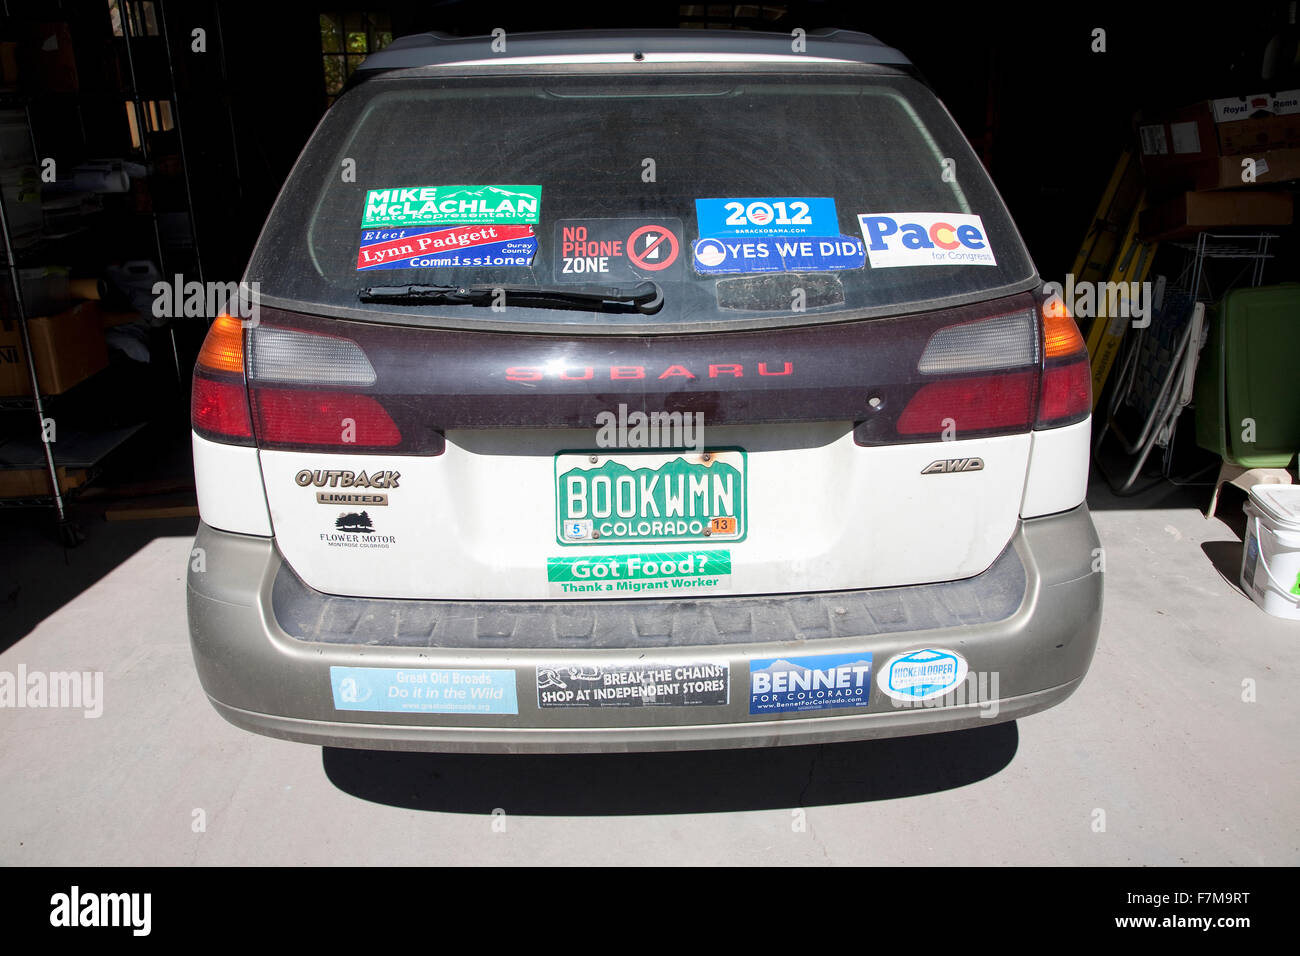 Colorado subaru with many bumper stickers and license plate that reads book woman